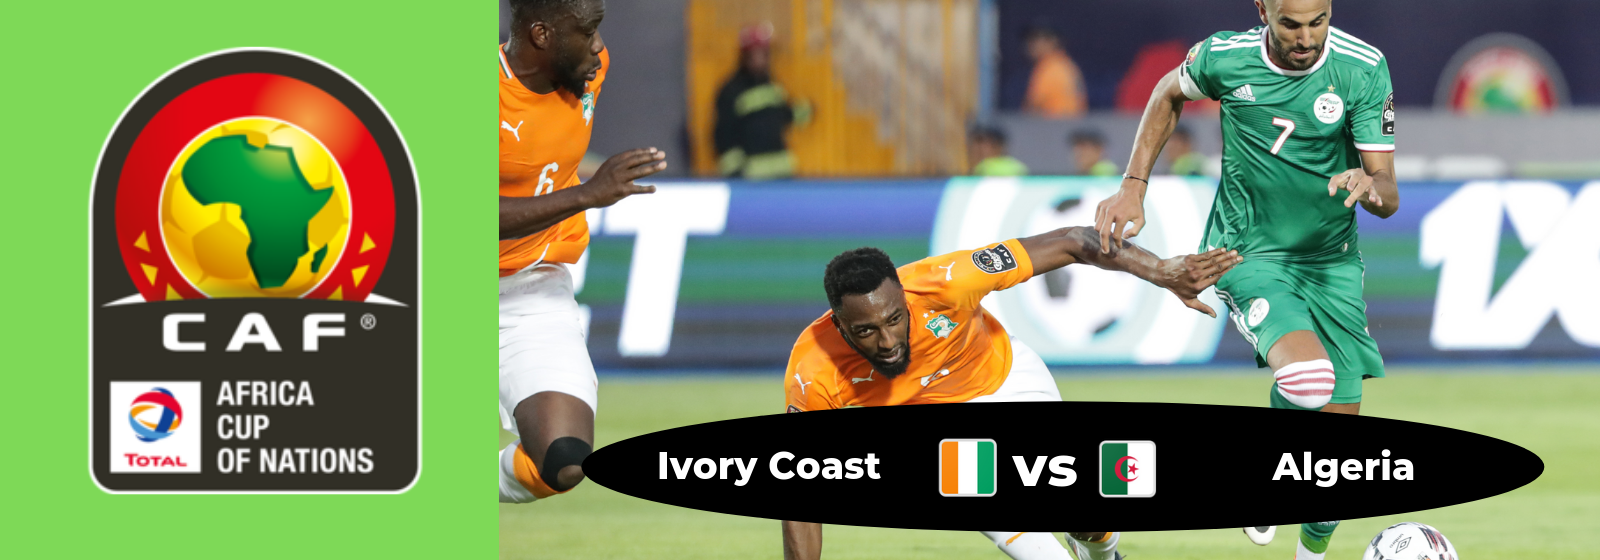 Africa Cup of Nations Ivory Coast Vs. Algeria Asian Connect